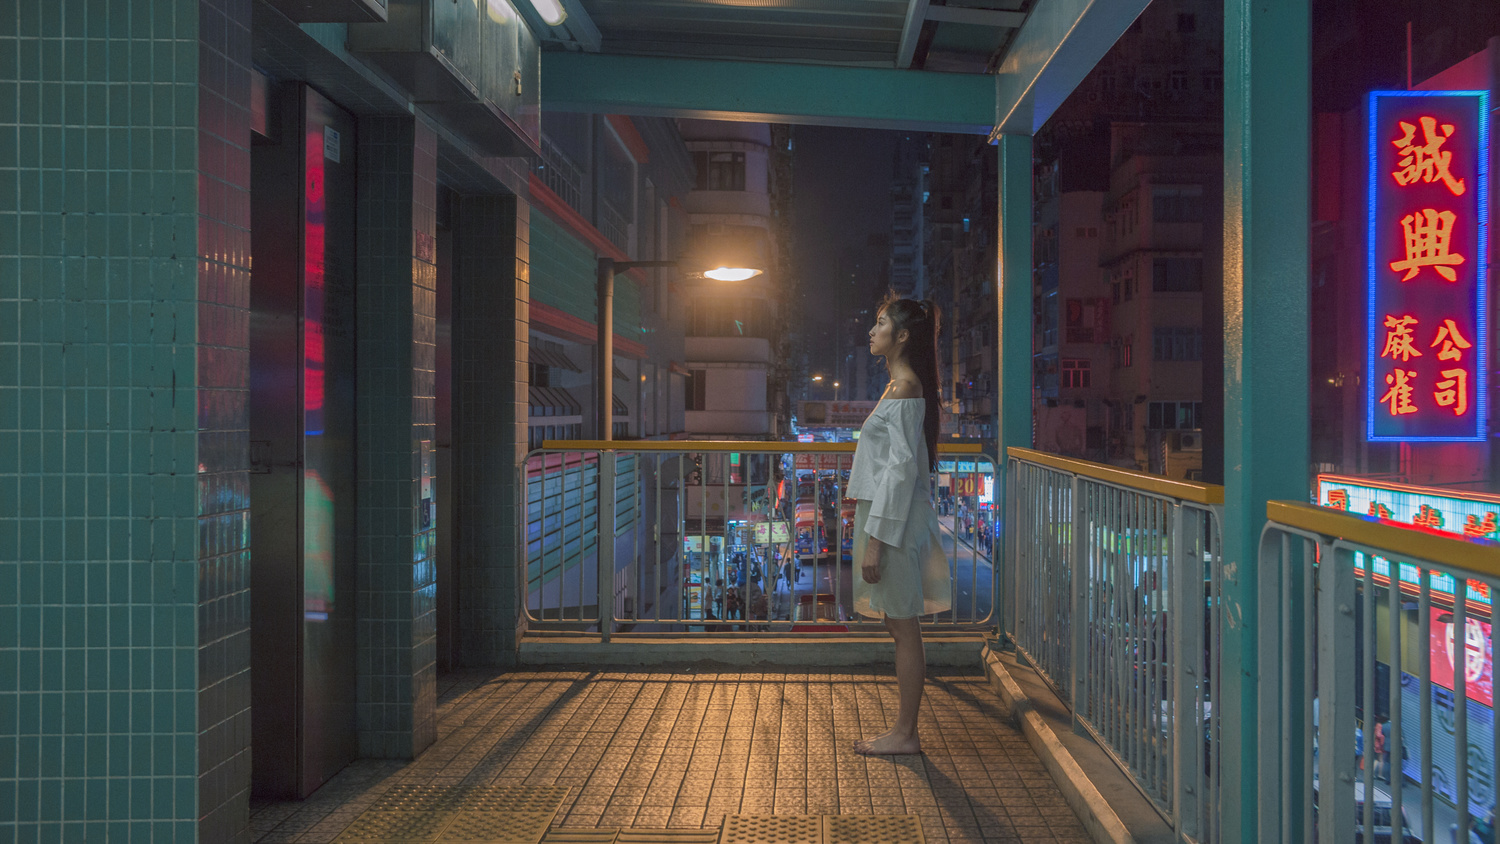 The Girl Roaming Around at Midnight by Sophie Cheung